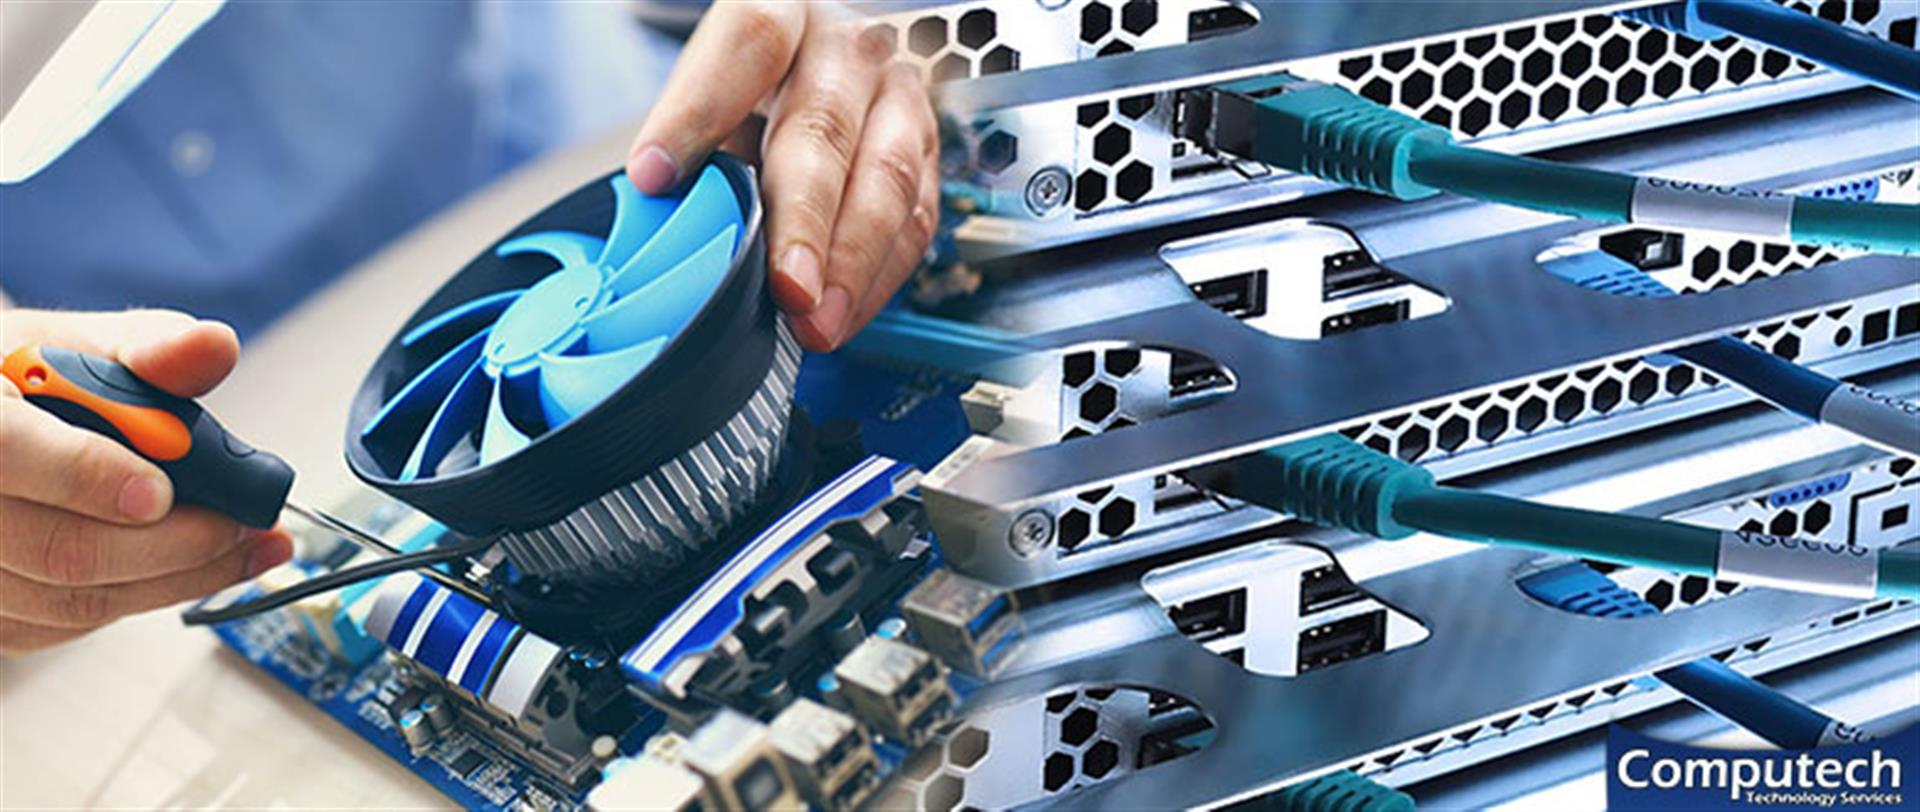 Dacula Georgia On Site PC & Printer Repair, Networking, Voice & Data Cabling Services